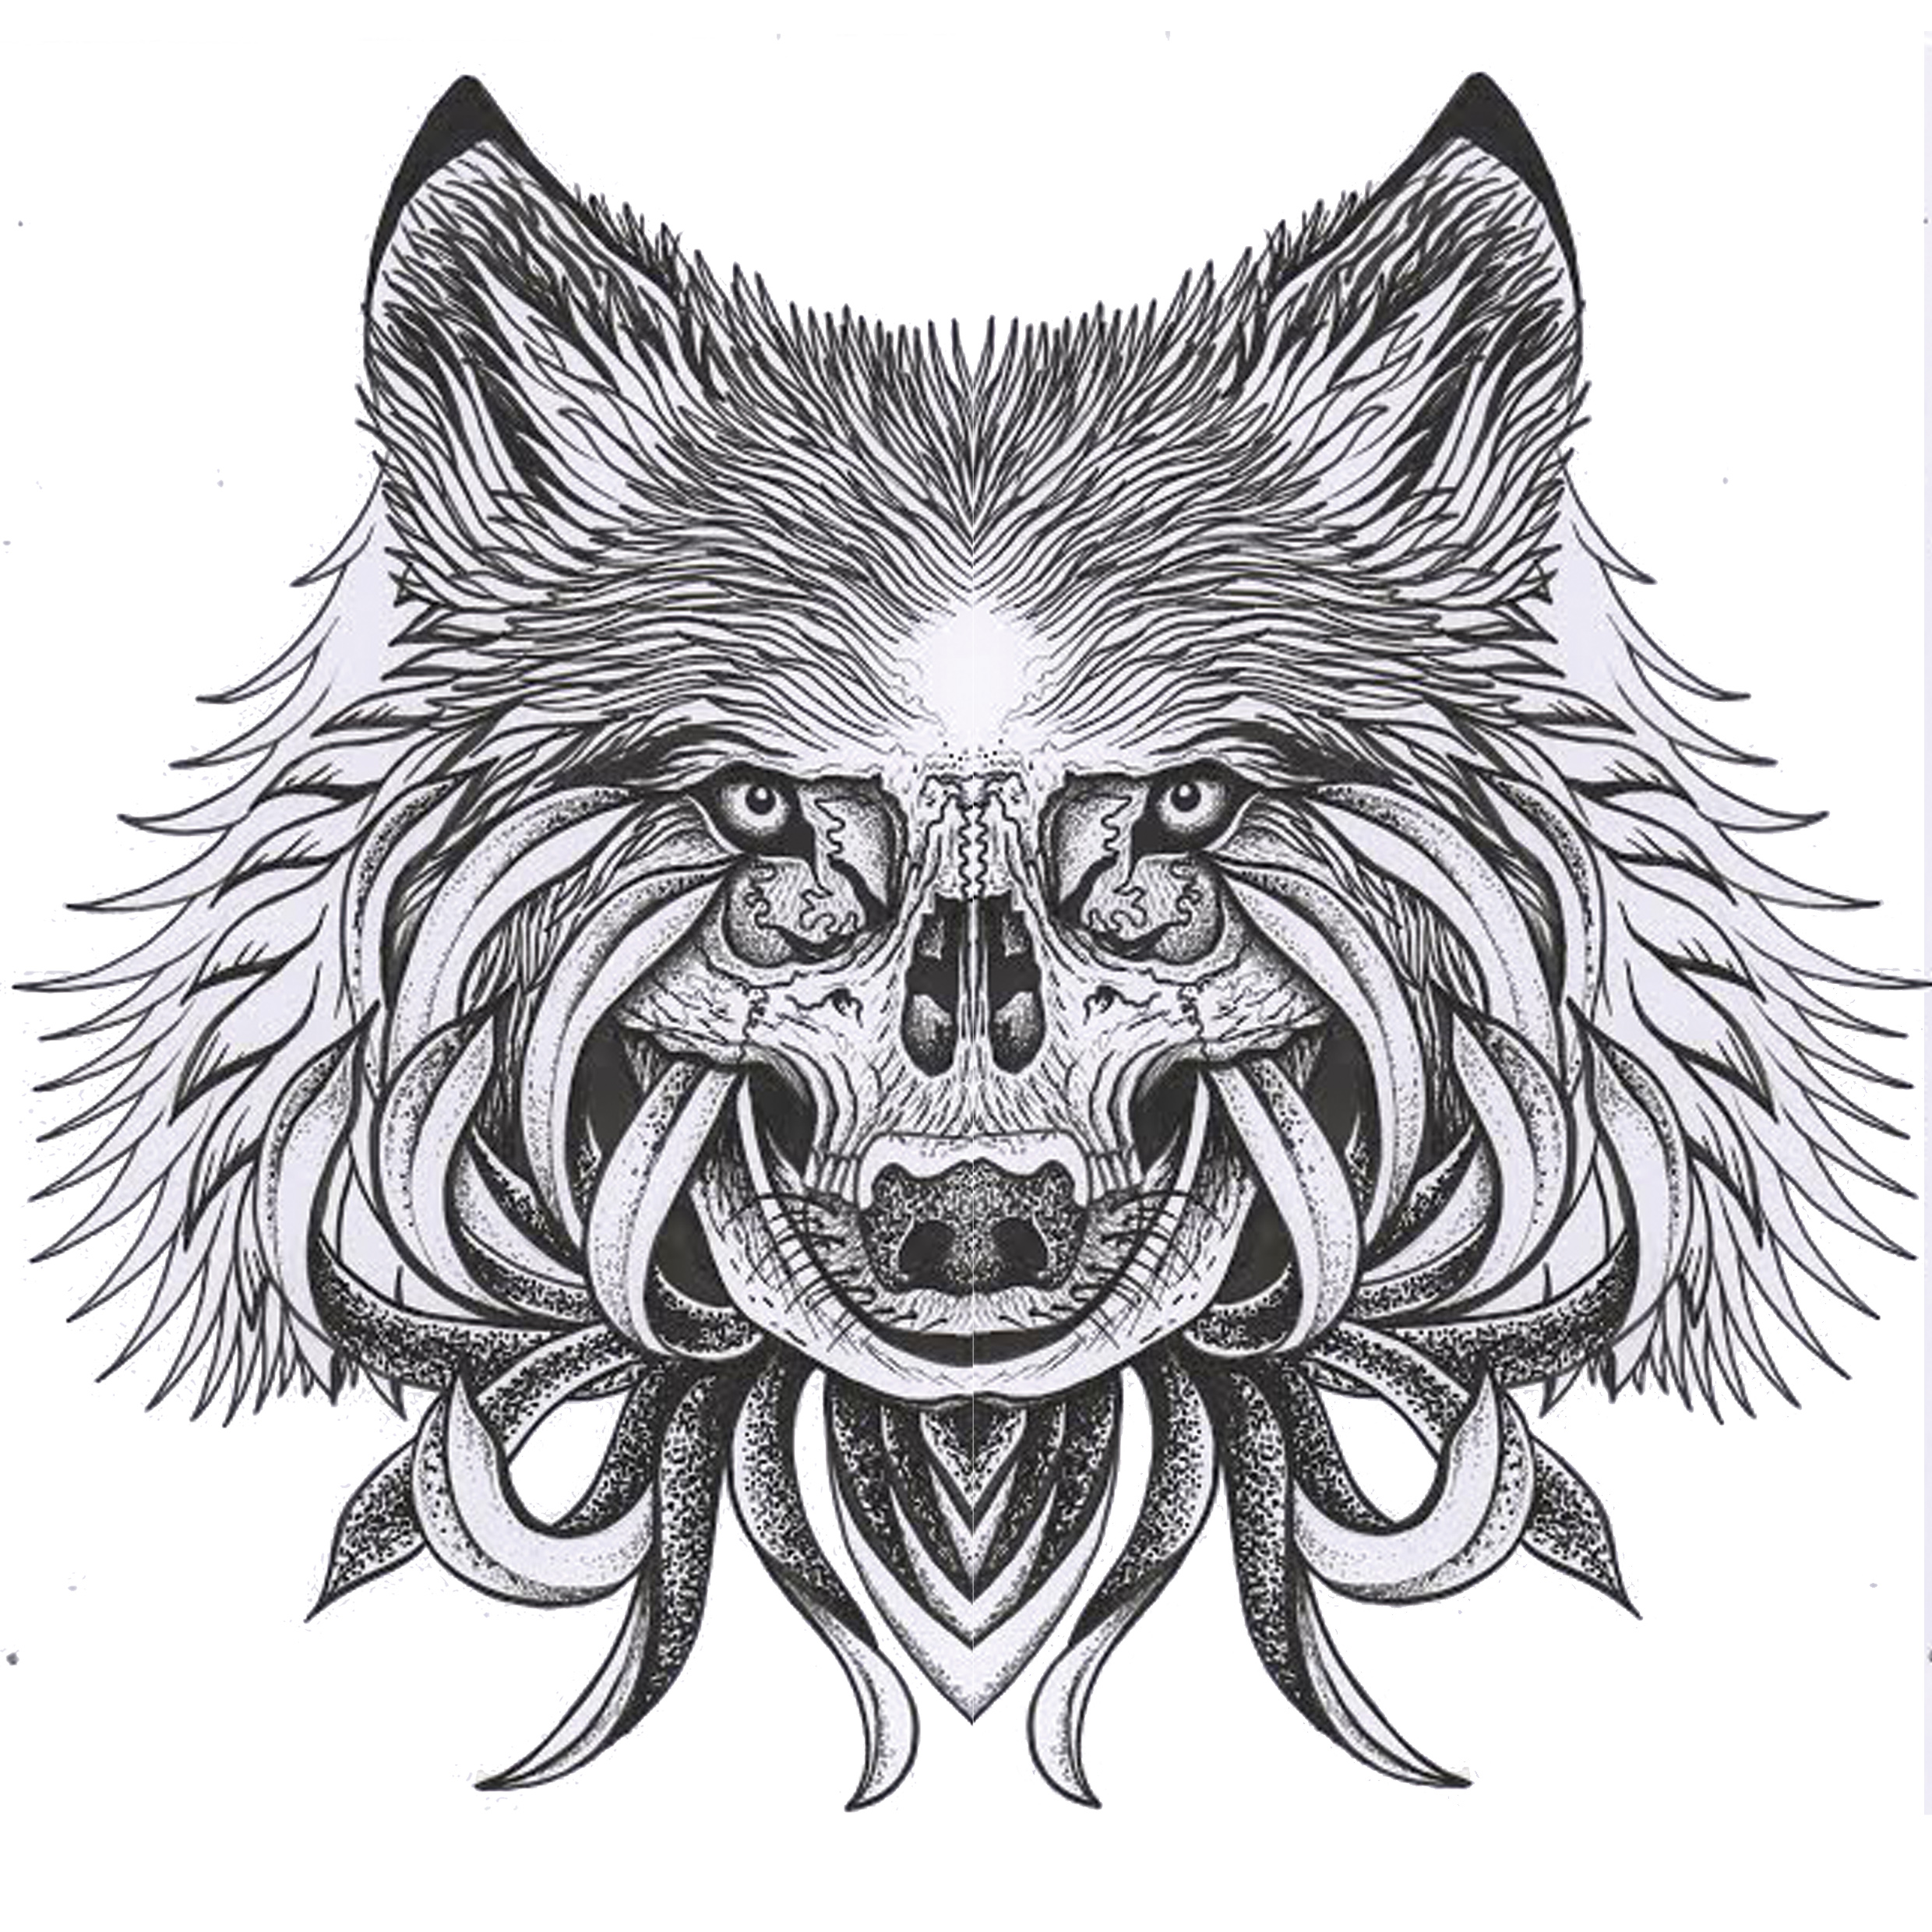 I Created The Image For This Artwork First In Photoshop I Picked Elements  From A Wolf, Bear, Skull And Chrysanthemum Flower That I Felt Would Make A